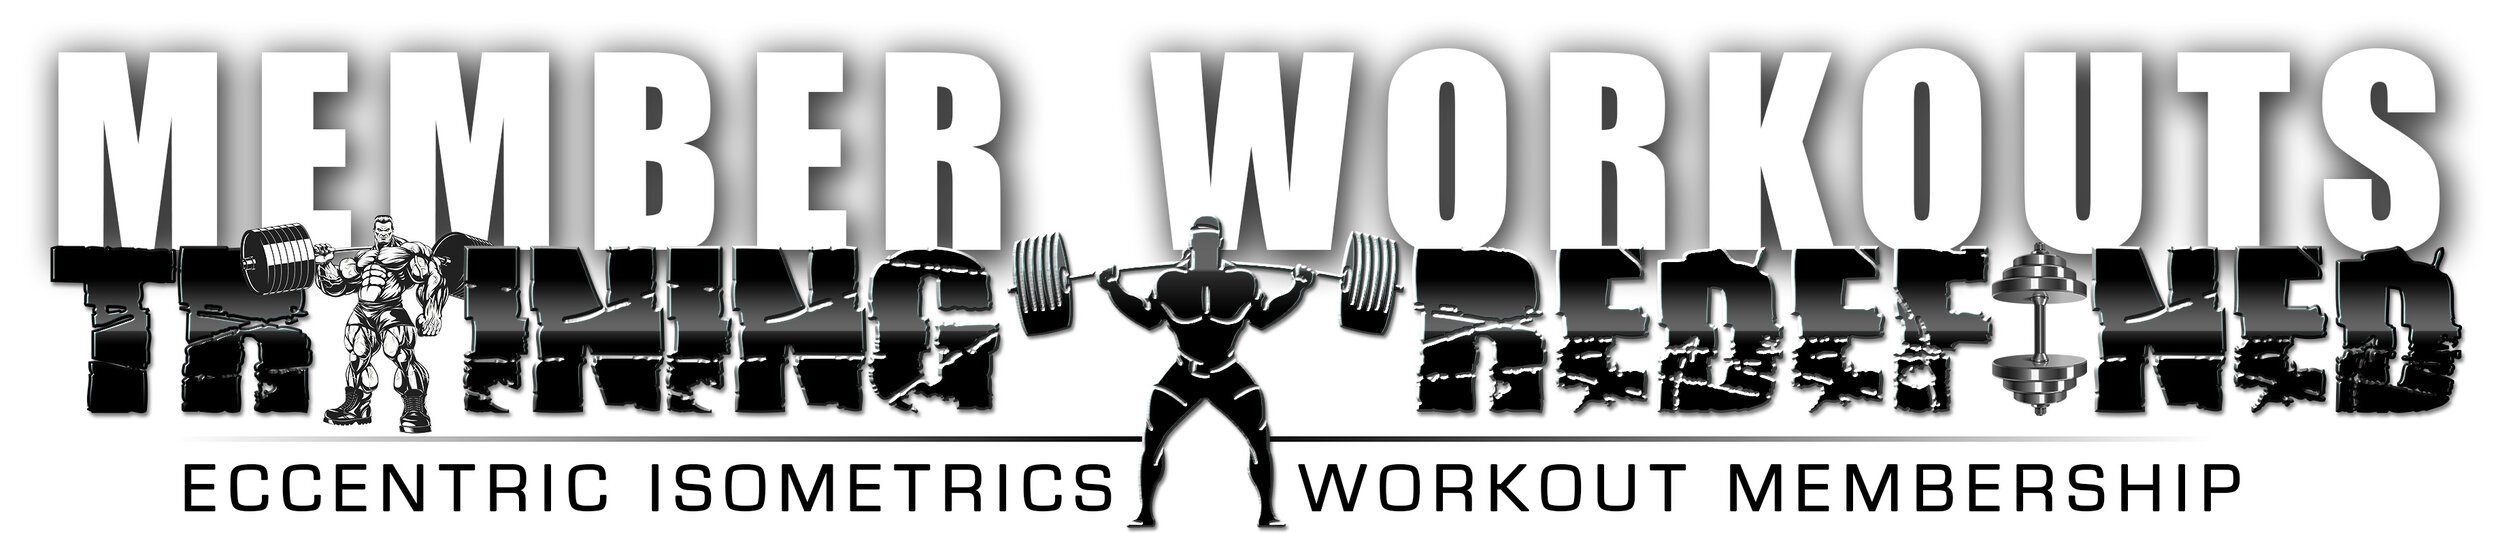 Member Workouts Training Redefined Title (AHP).jpg